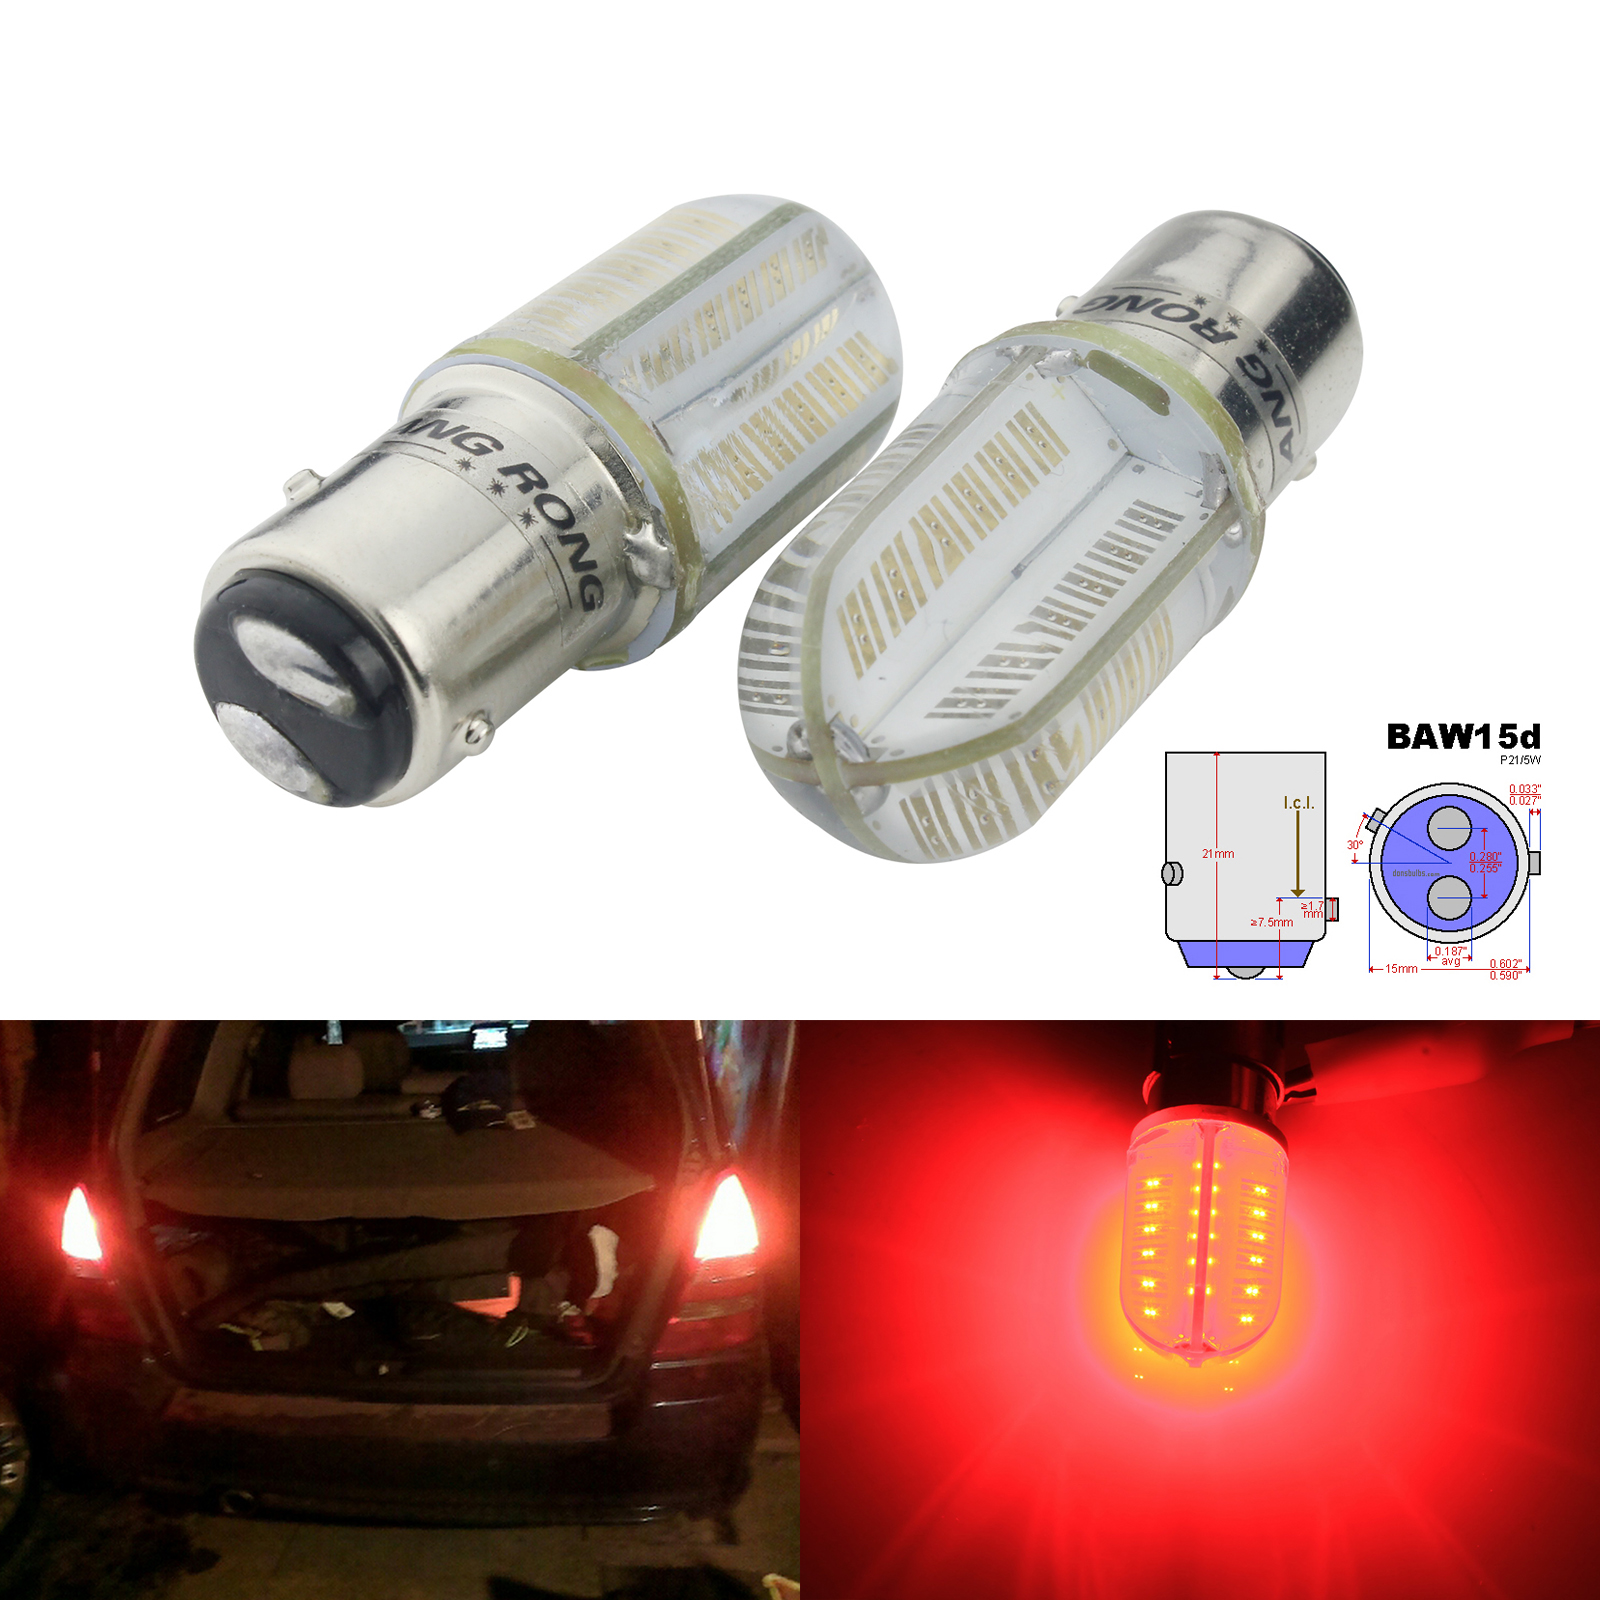 2x BRAKE STOP TAIL LIGHT CAR BULBS TWIN FILAMENT 380 12V 21/5w OFF SET PINS Vehicle Parts & Accessories Car External & Indicator Light Bulbs & LEDs